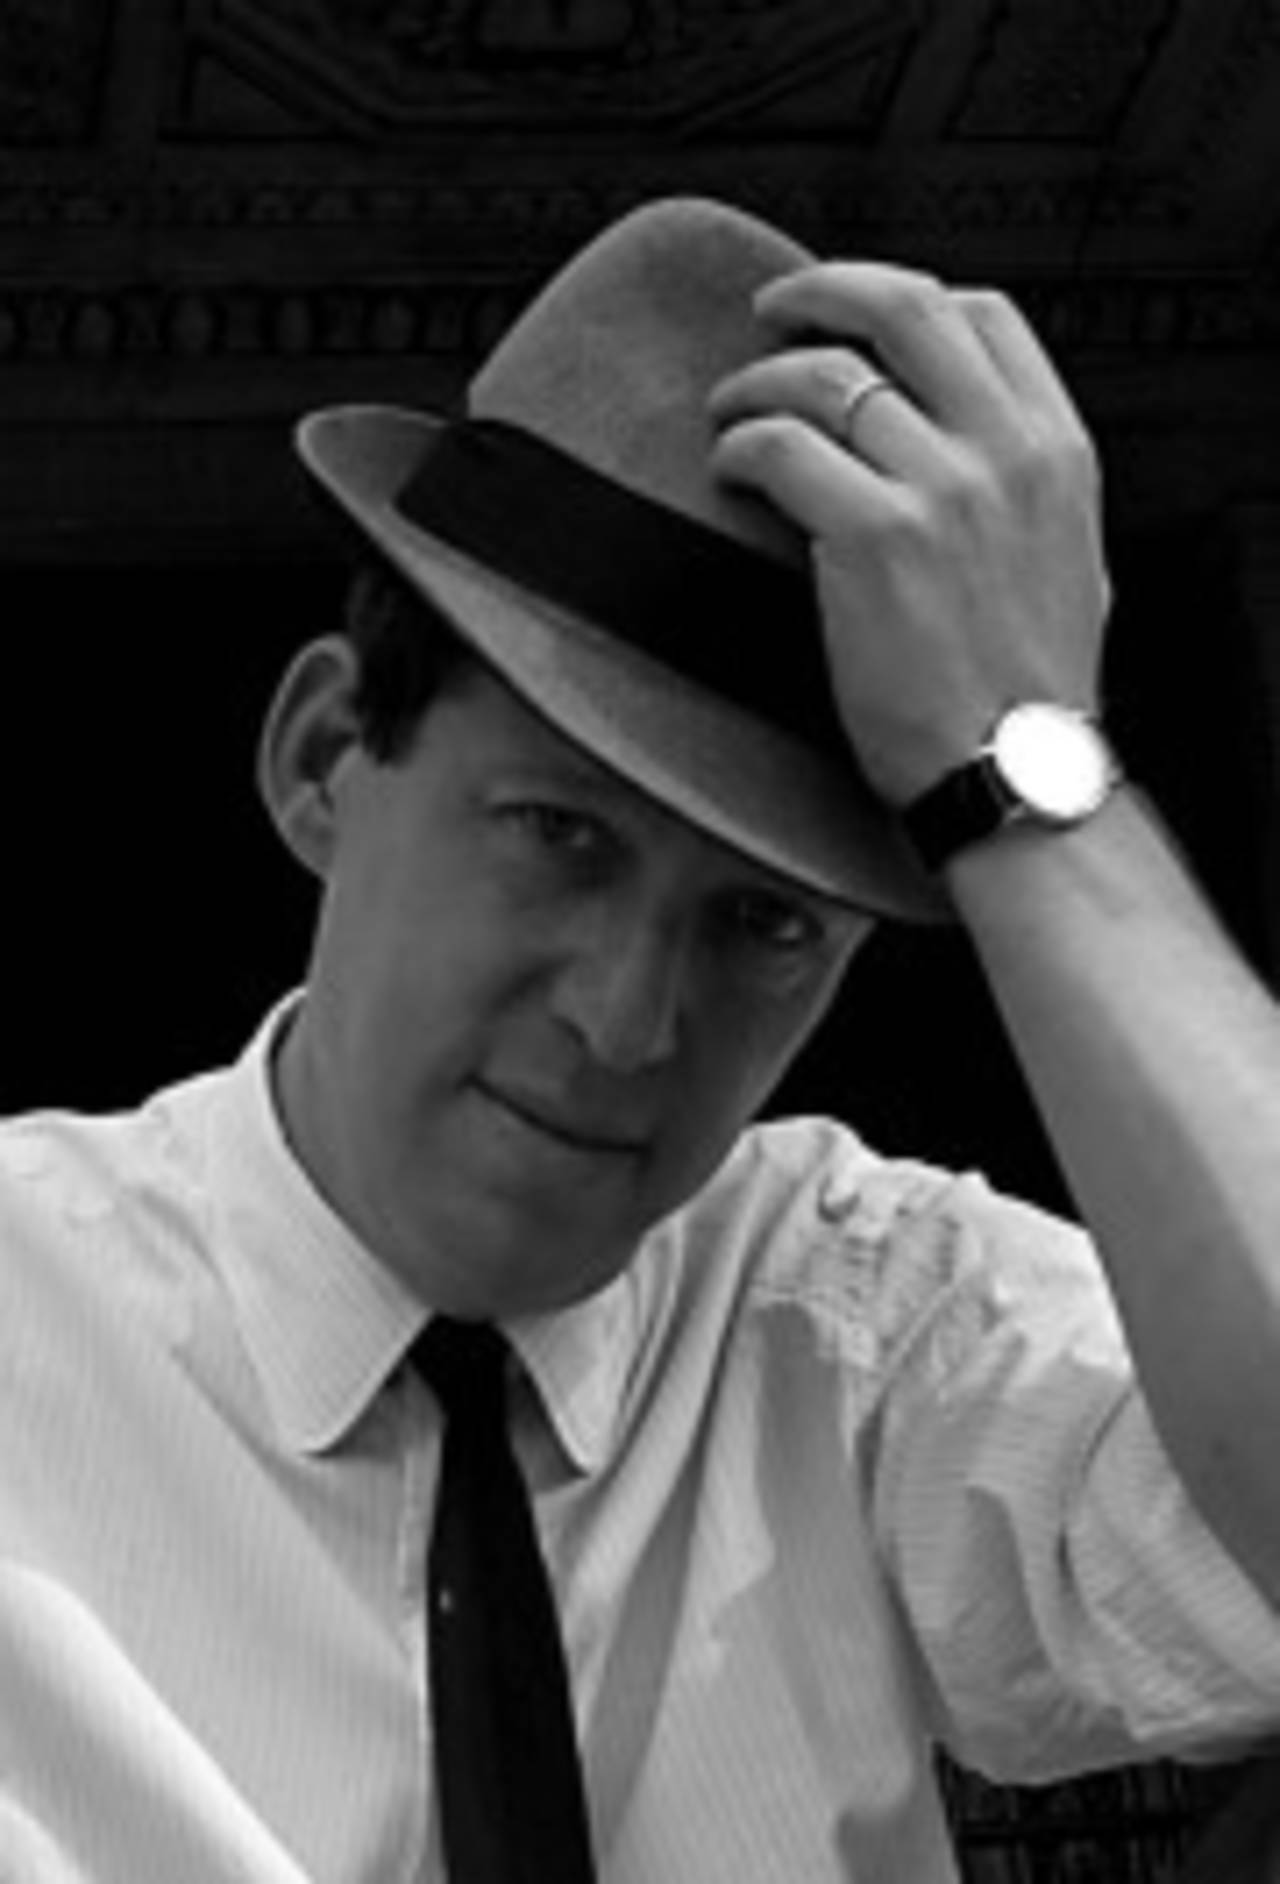 interview on paul holdengraber s call from paul podcast cory i appeared on the current episode of a call from paul mp3 a podcast created by paul holdengraber who curates the ny public library s amazing interview